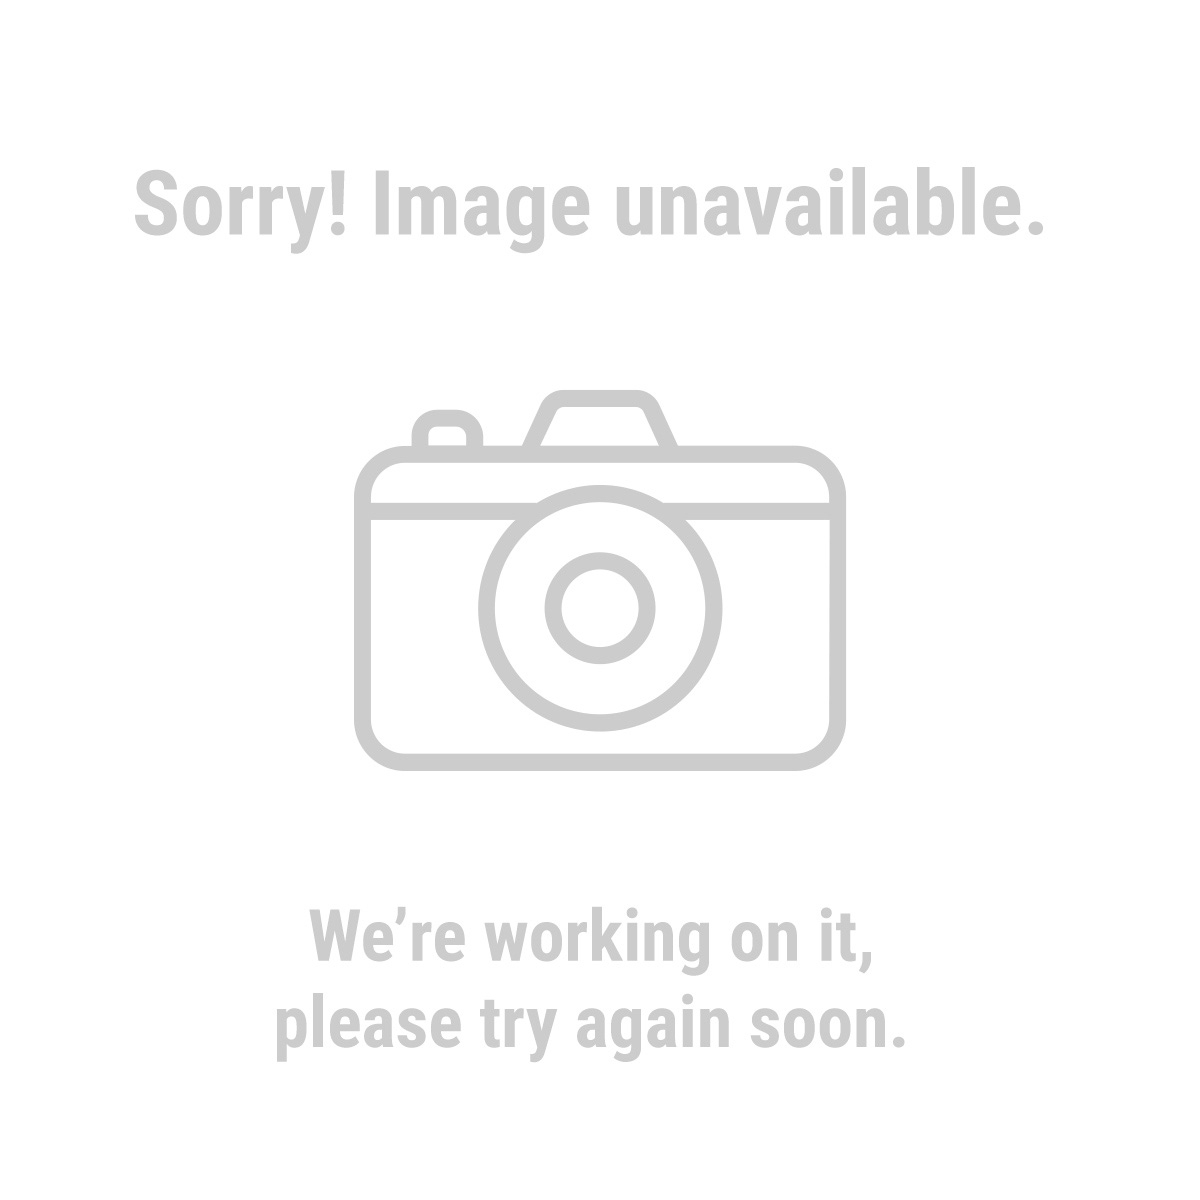 "Haul Master Shop 69505 72"" x 80"" Mover's Blanket"